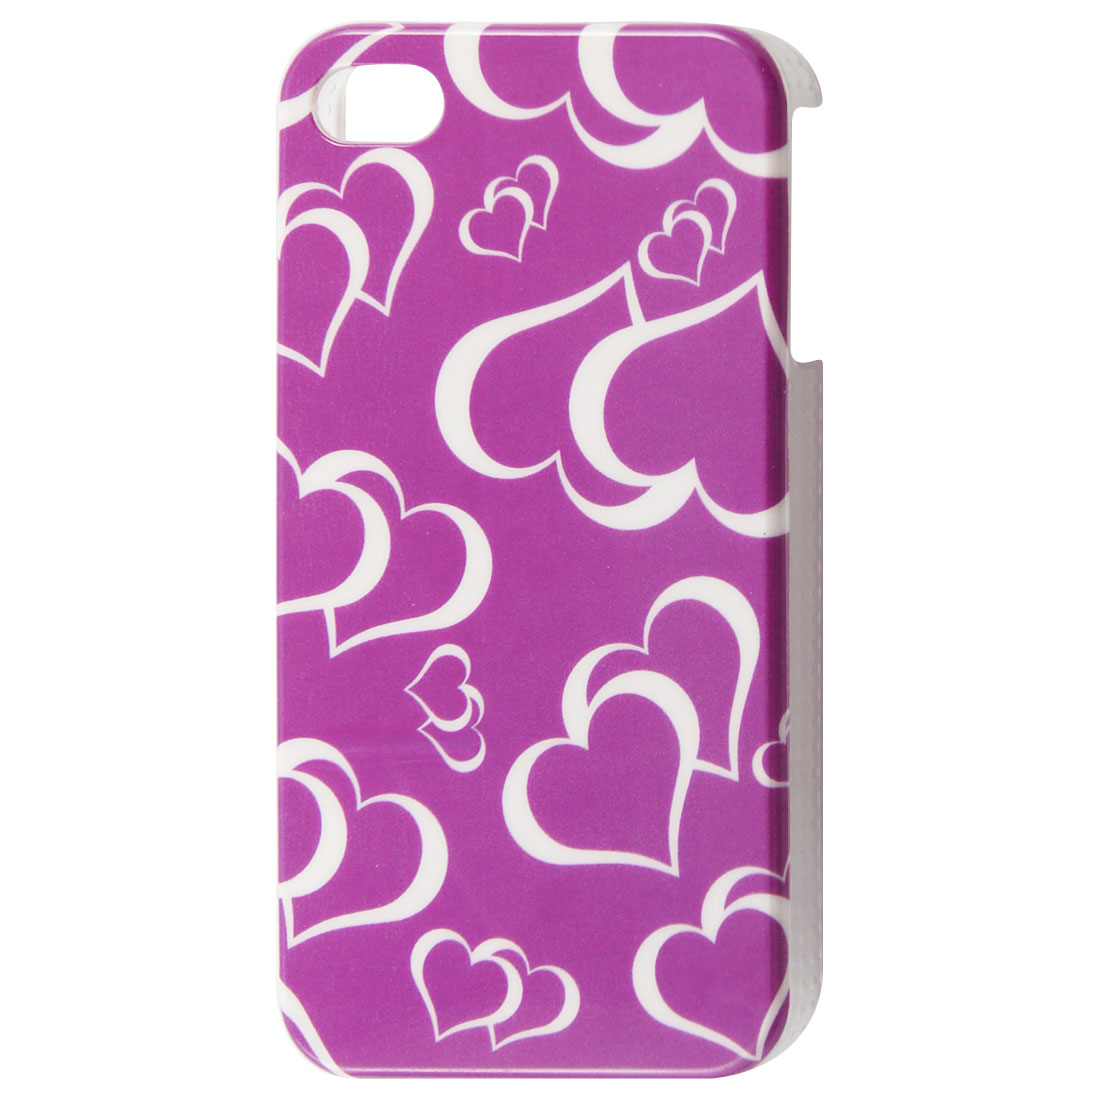 IMD Plastic White Hearts Print Purple Back Case for iPhone 4 4S 4GS